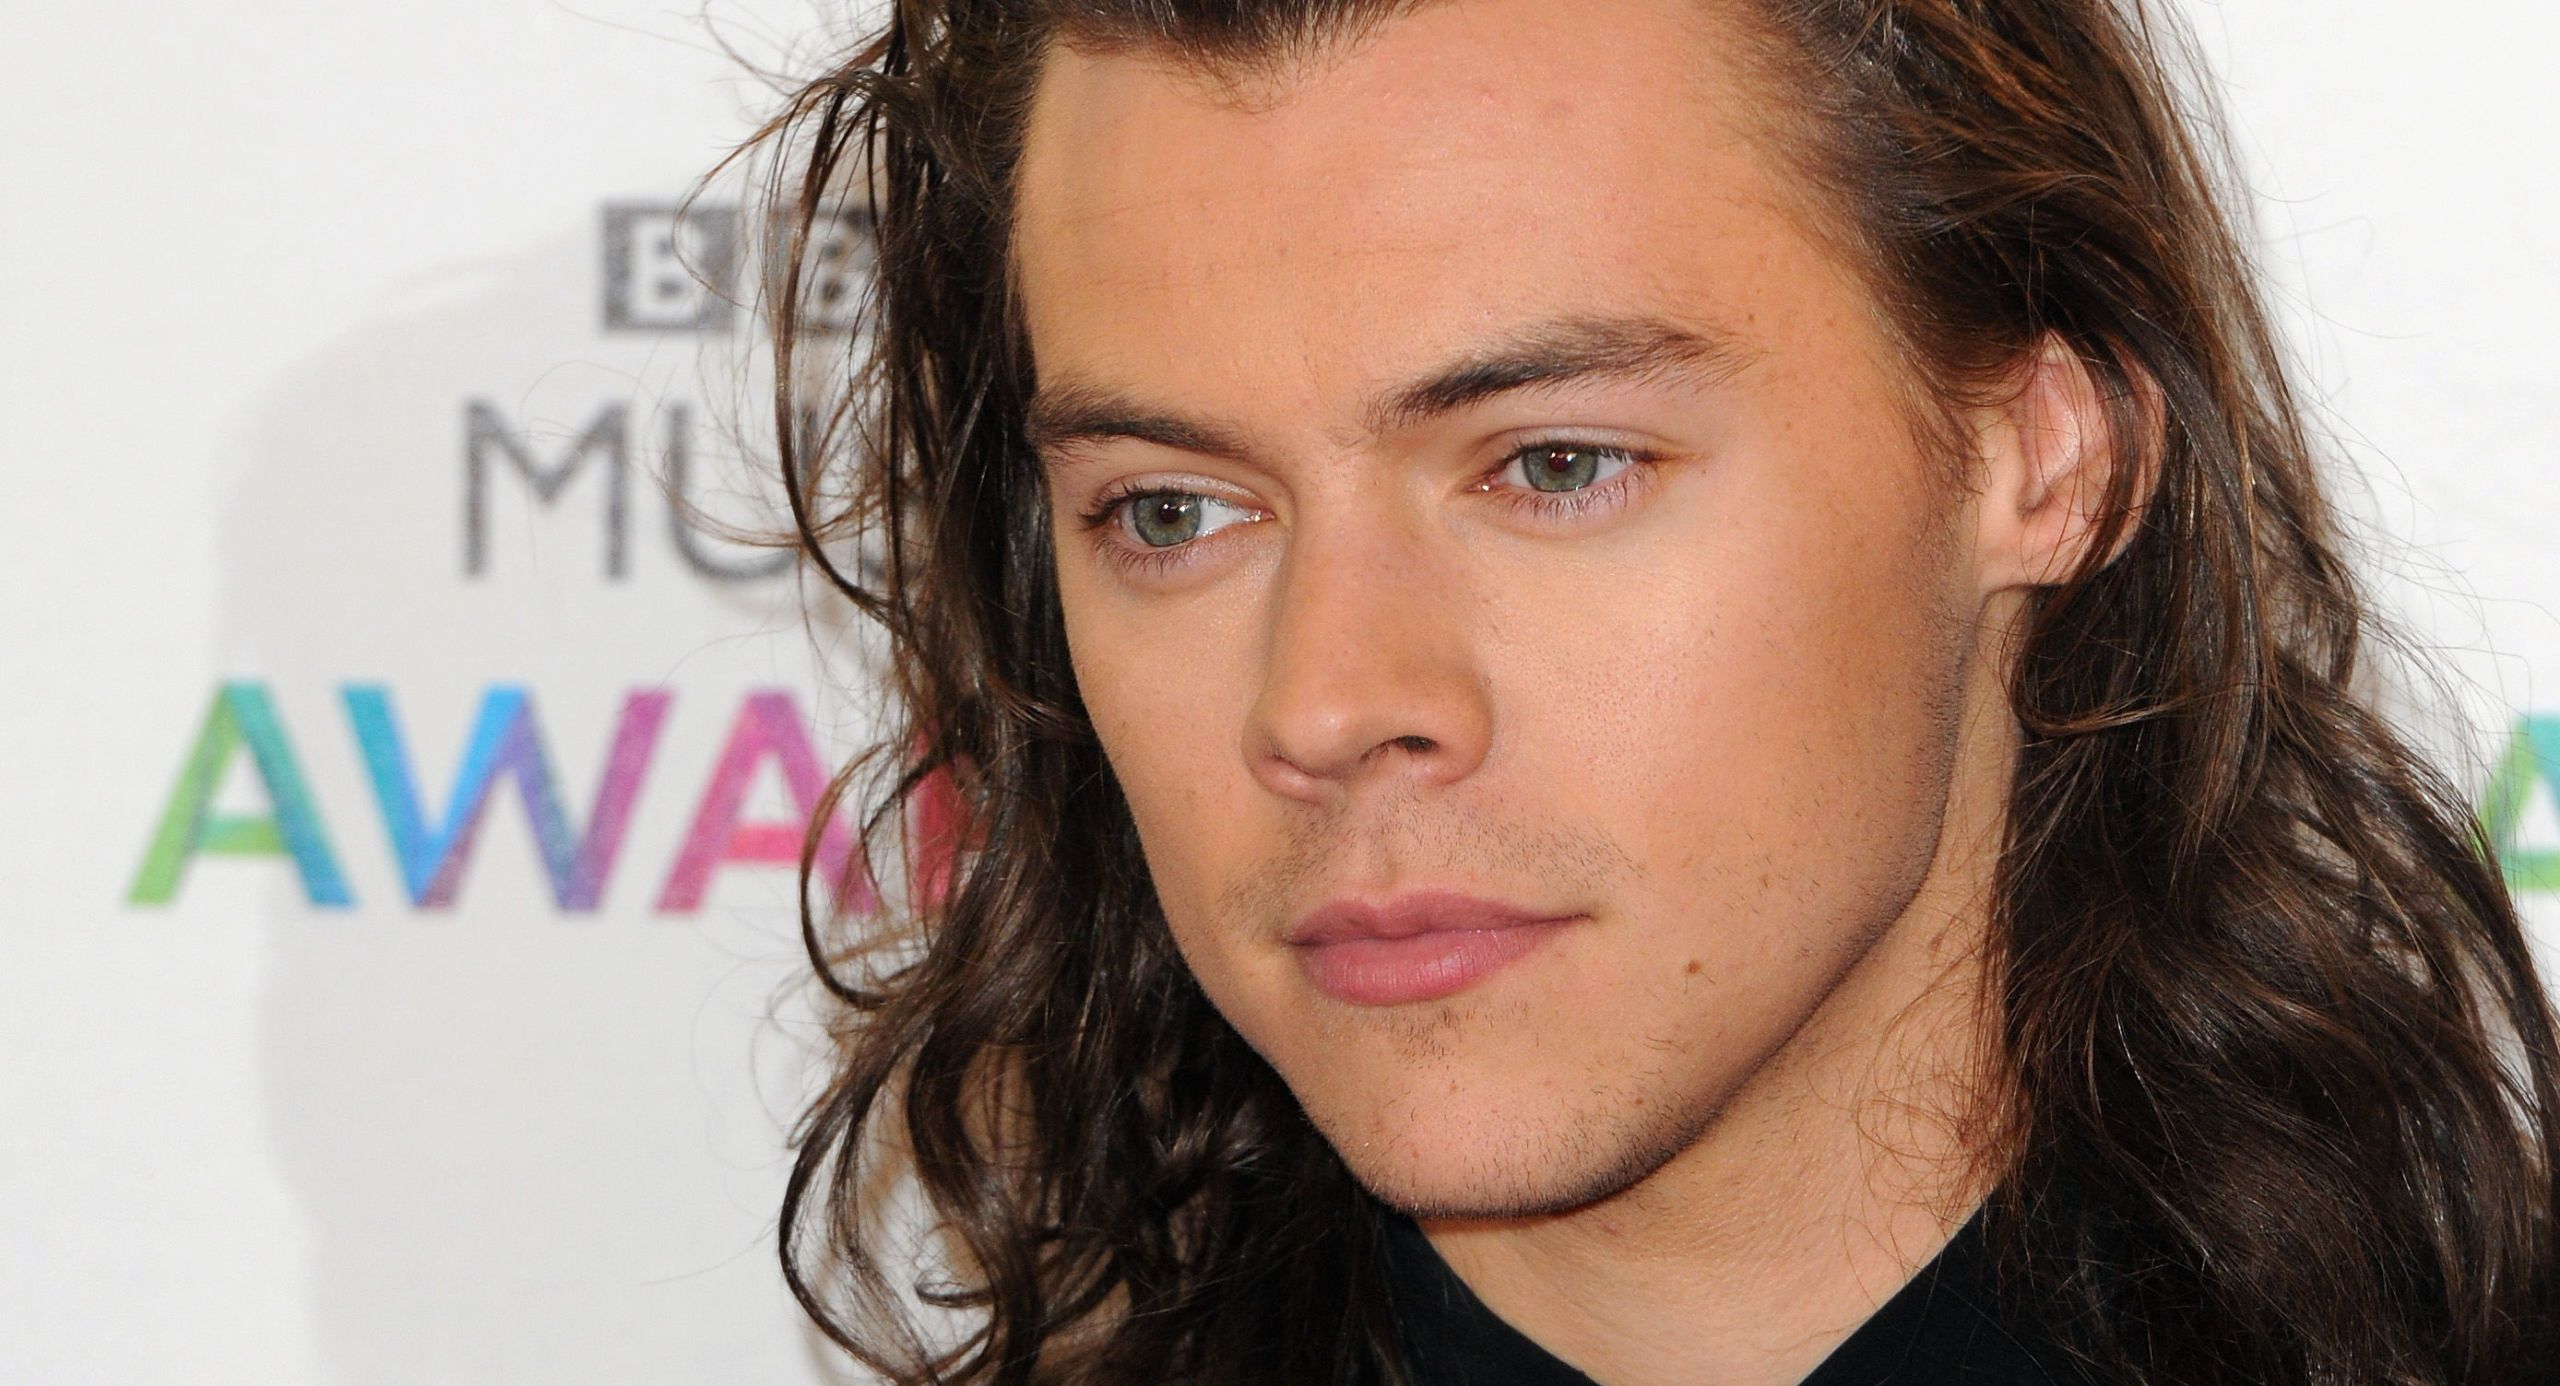 The First Proper Pics Of Harry Styles With Short Hair Have FINALLY Dropped